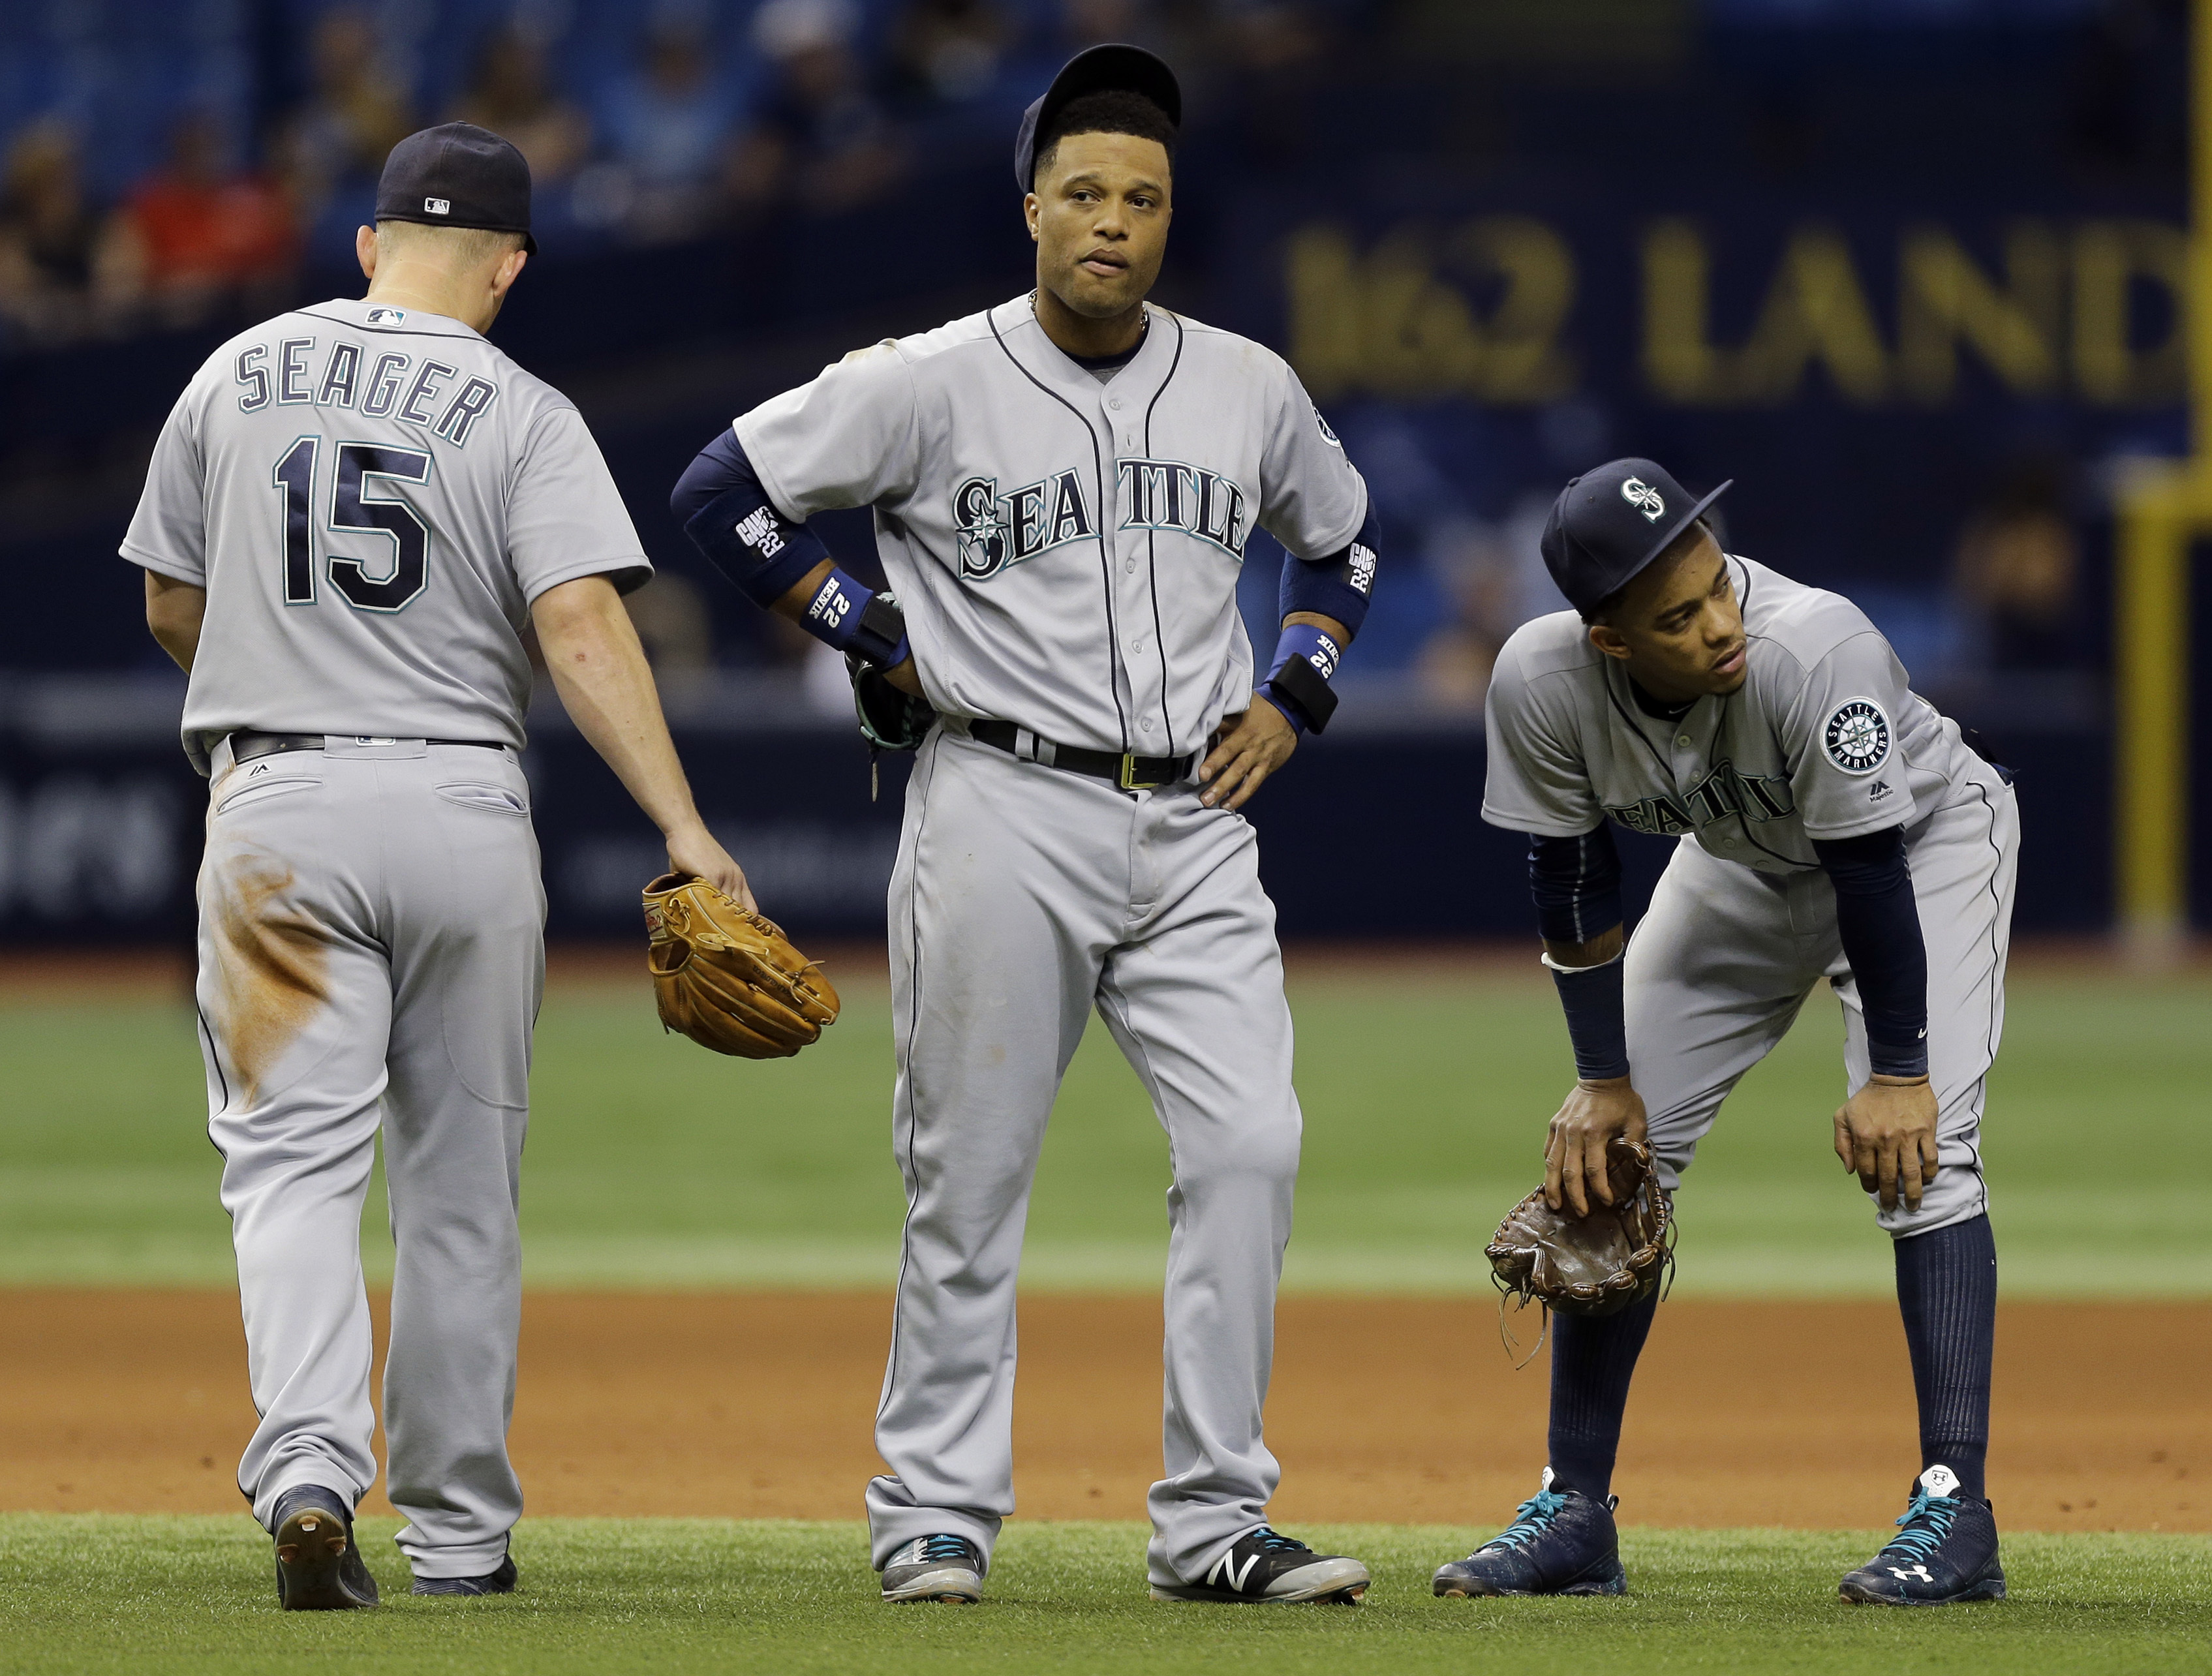 Seattle Mariners third baseman Kyle Seager, left, second baseman Robinson Cano, center, and shortstop Ketel Marte react after Tampa Bay Rays' Evan Longoria hit a three-run home run off relief pitcher Nick Vincent during the seventh inning of a baseball ga